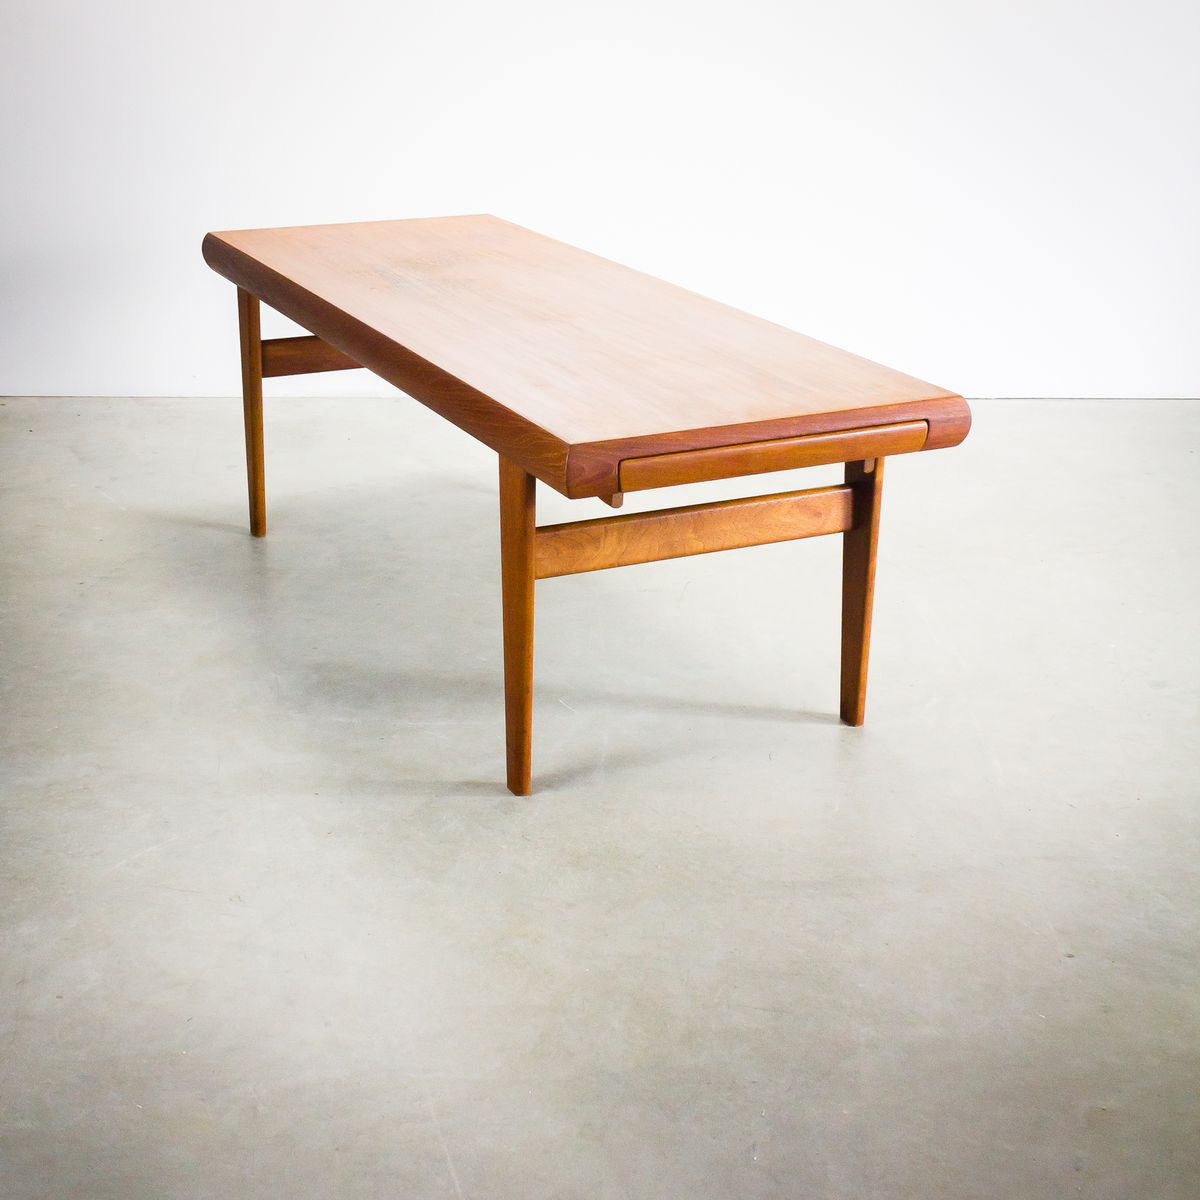 Danish teak coffee table with hidden side table from trioh for Table th hidden